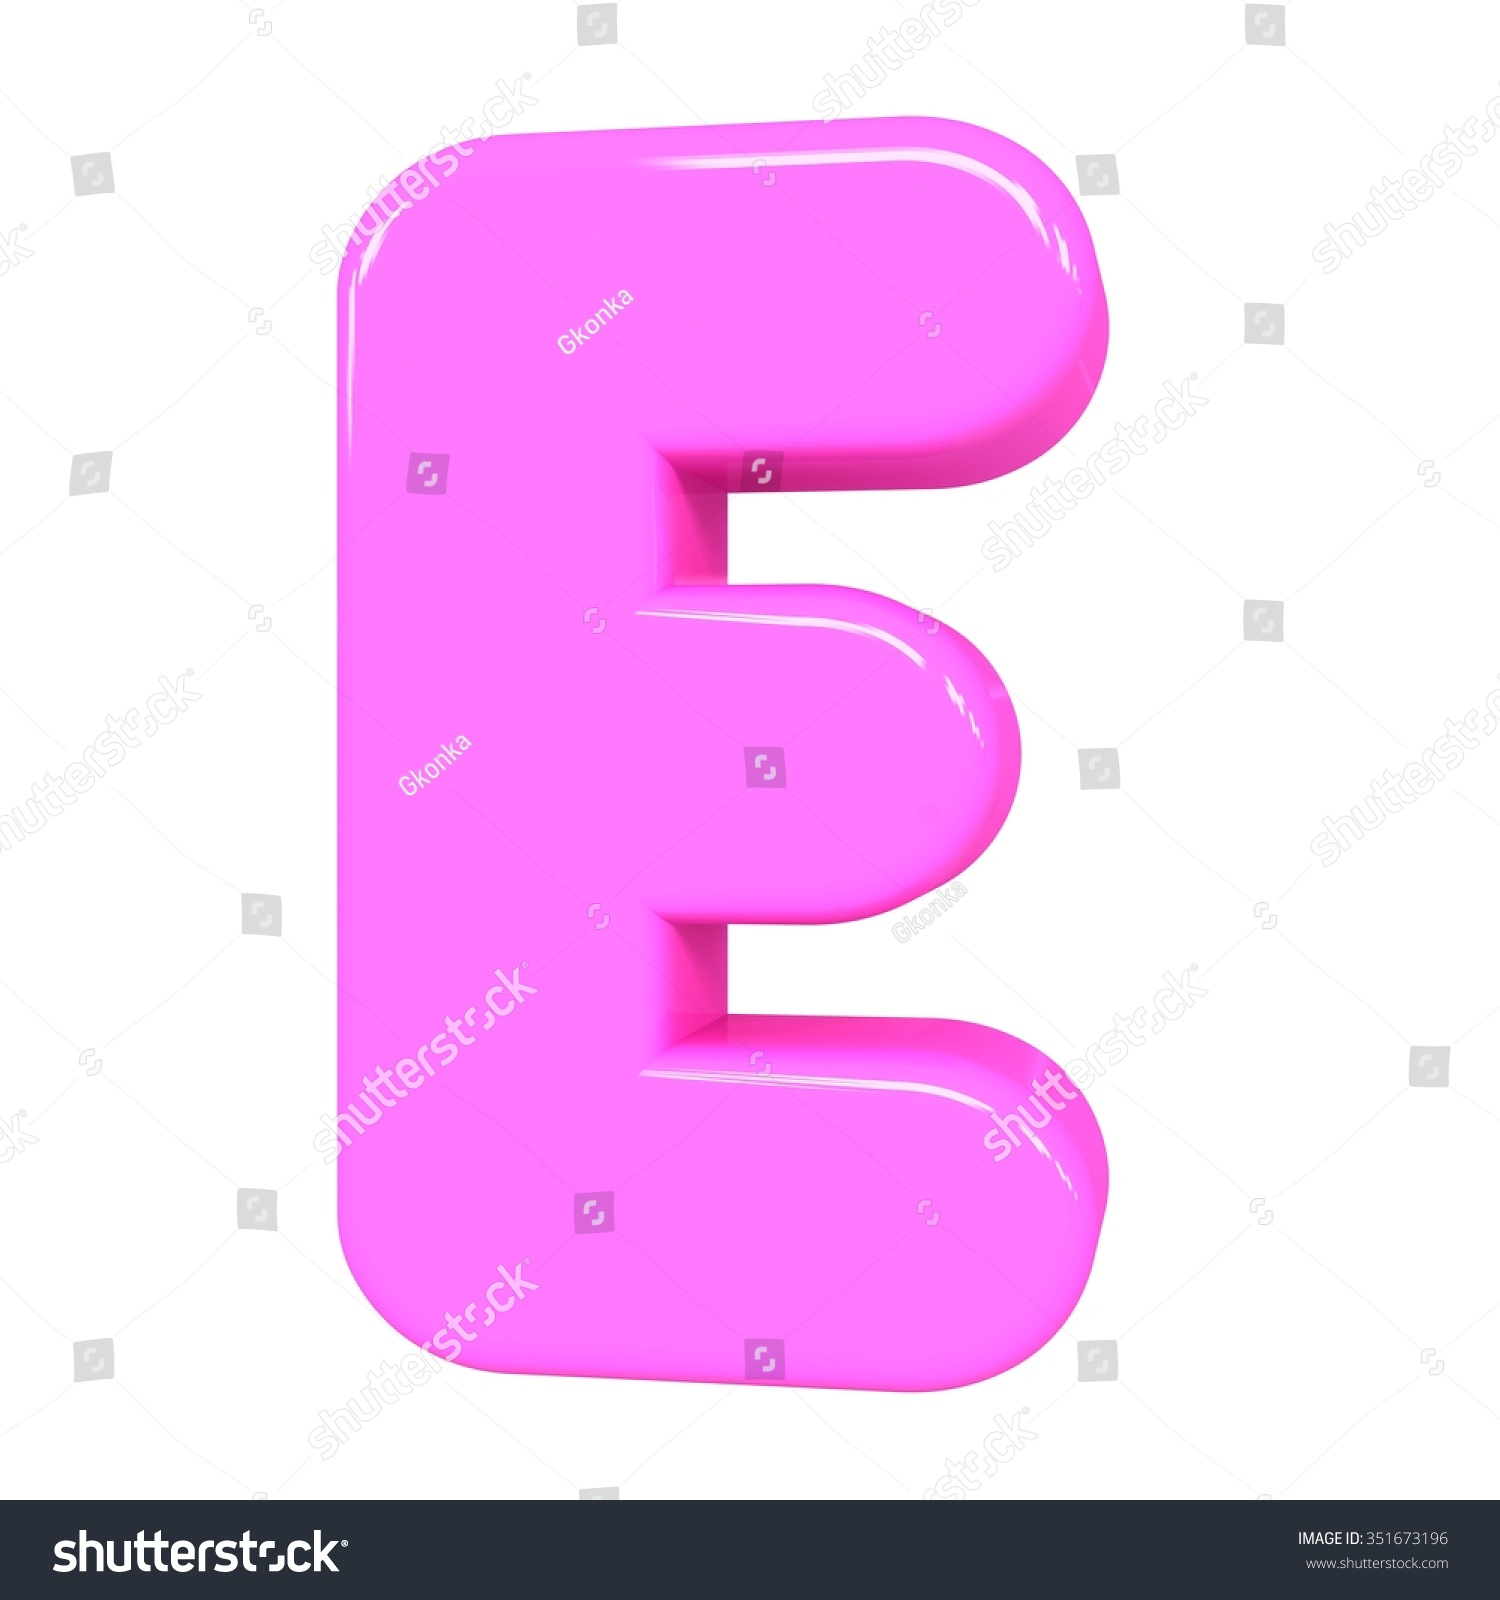 Royalty Free Stock Illustration of 3 D Cute Pink Letter E Cartoon ...